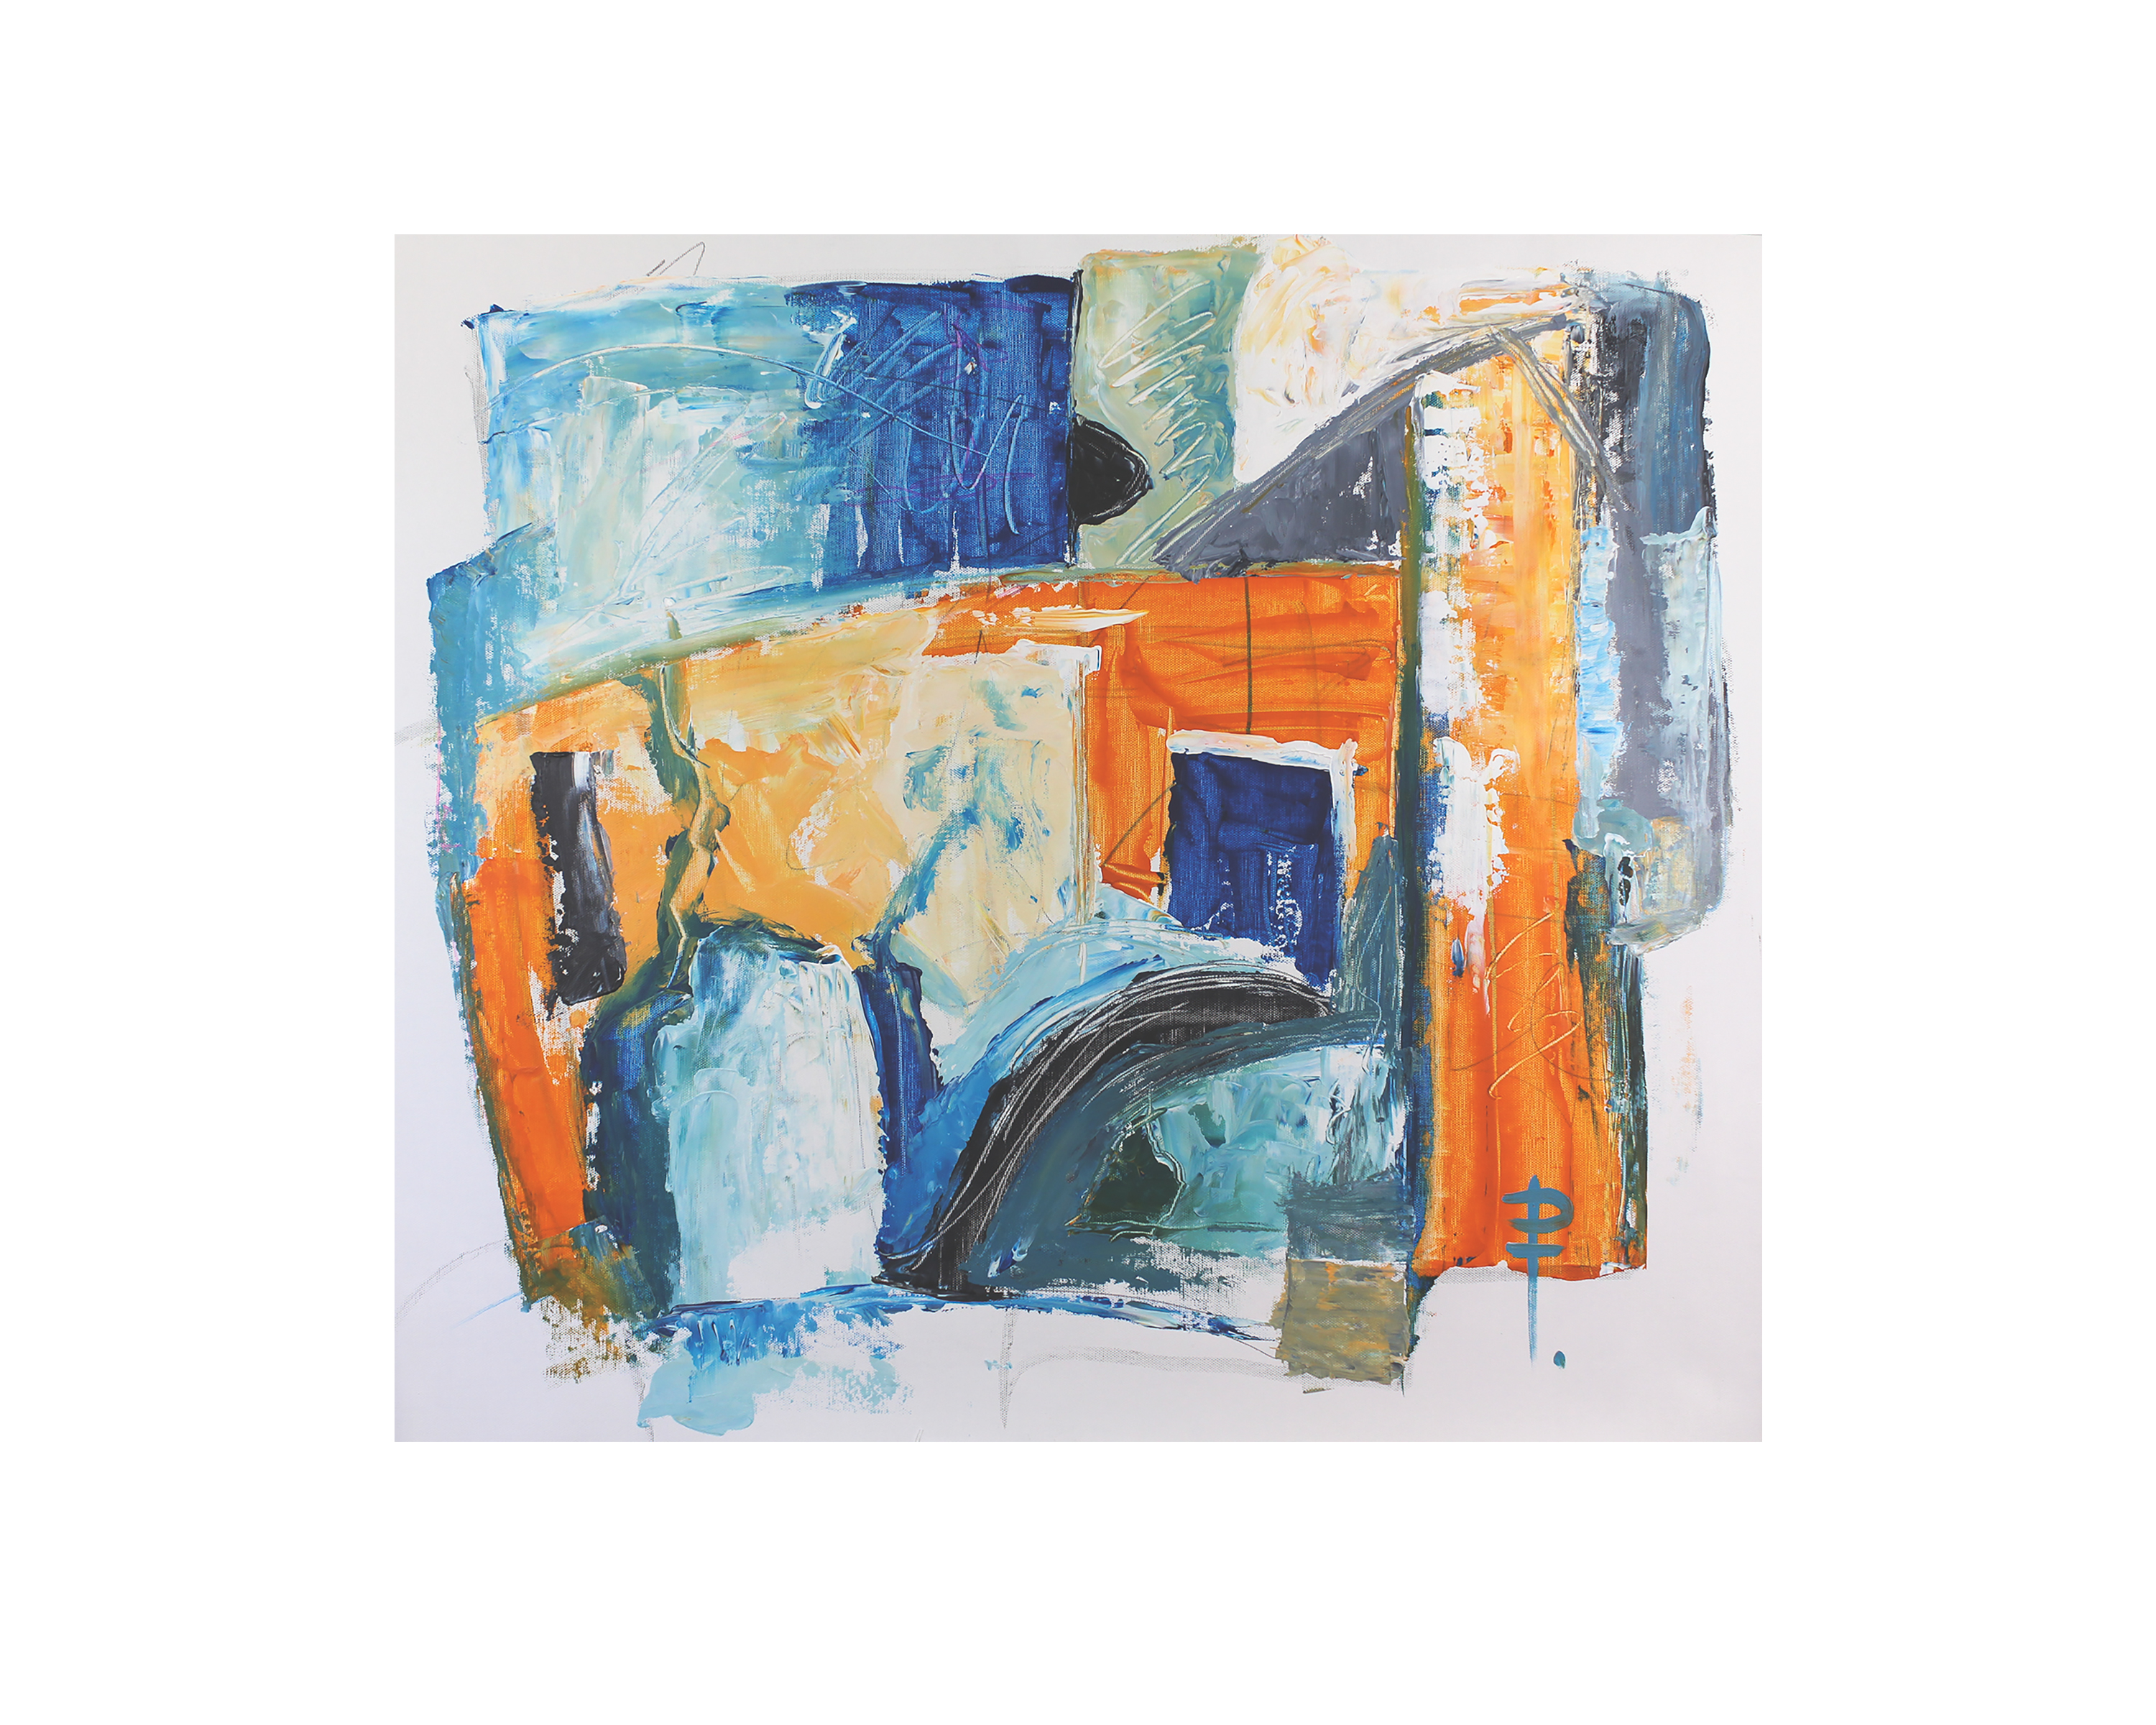 orange blue grey abstract painting on canvas by artist phoebe thomasson